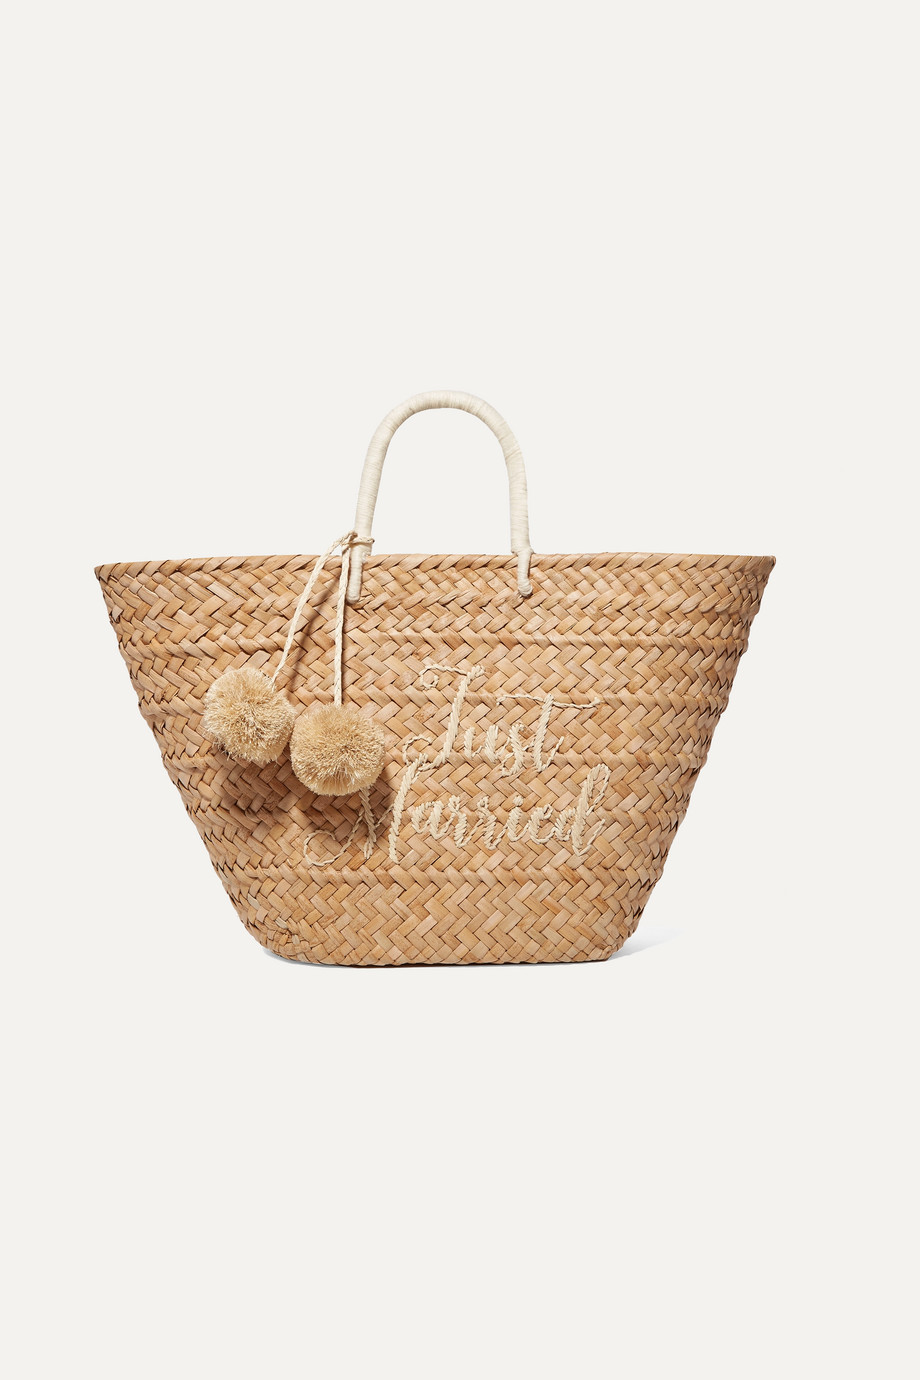 Kayu St Tropez pompom-embellished embroidered woven straw tote